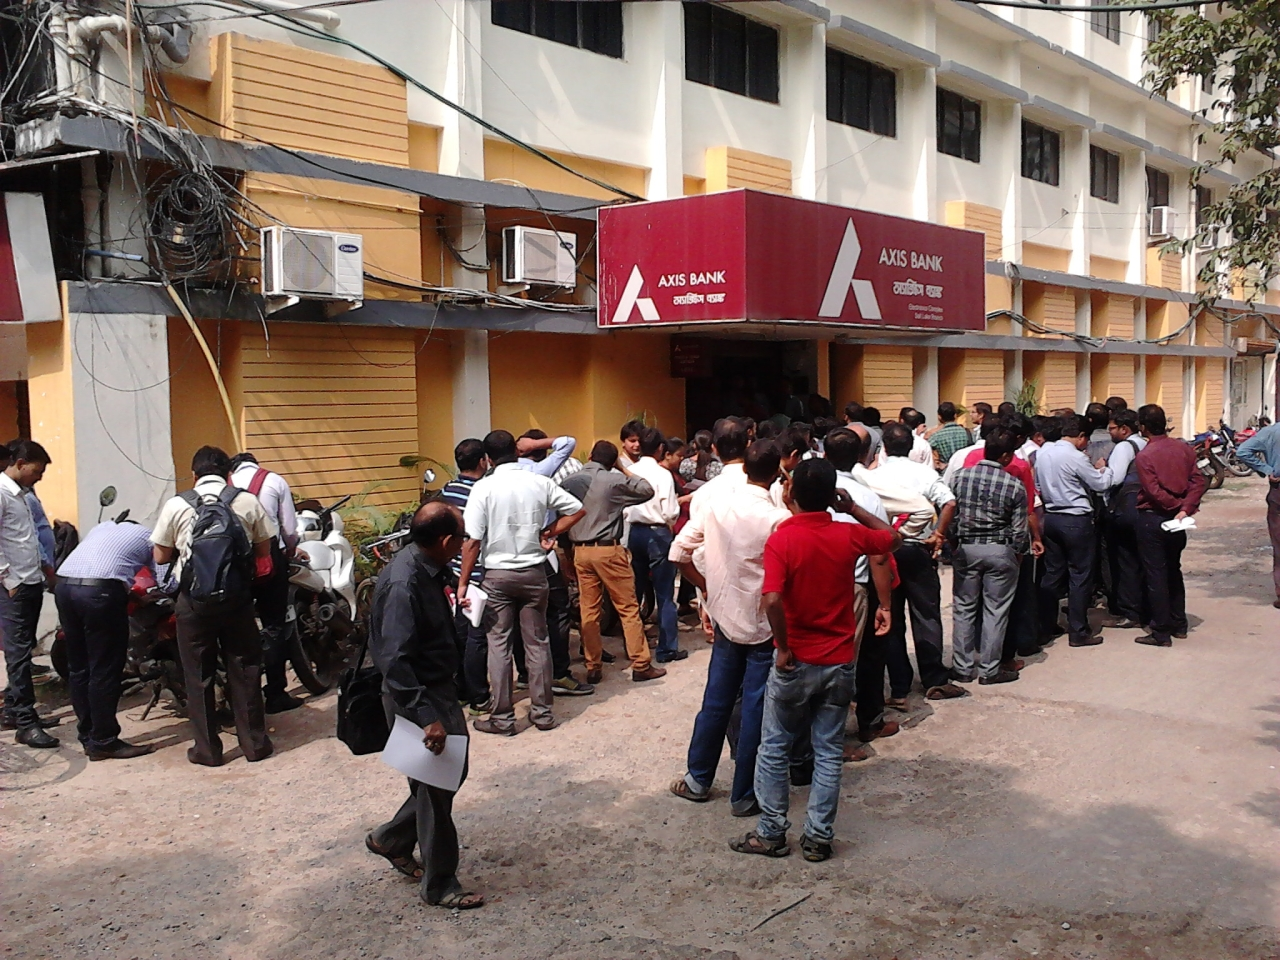 Customers queue up outside a bank during the DeMo drive. (Wikimedia Commons)